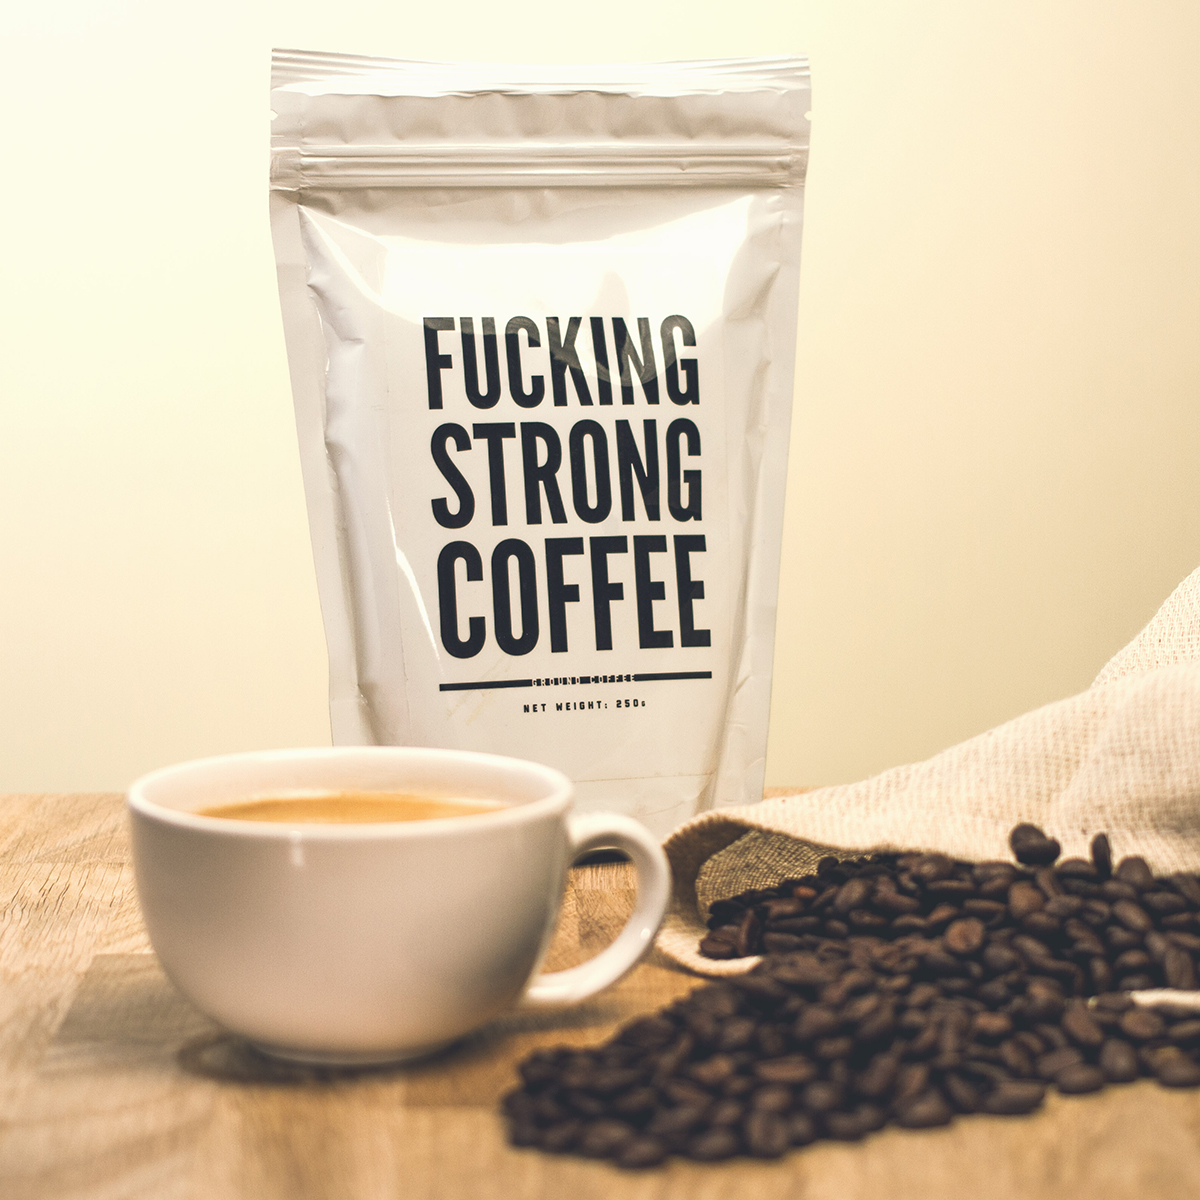 F*cking Strong Coffee : Café très fort